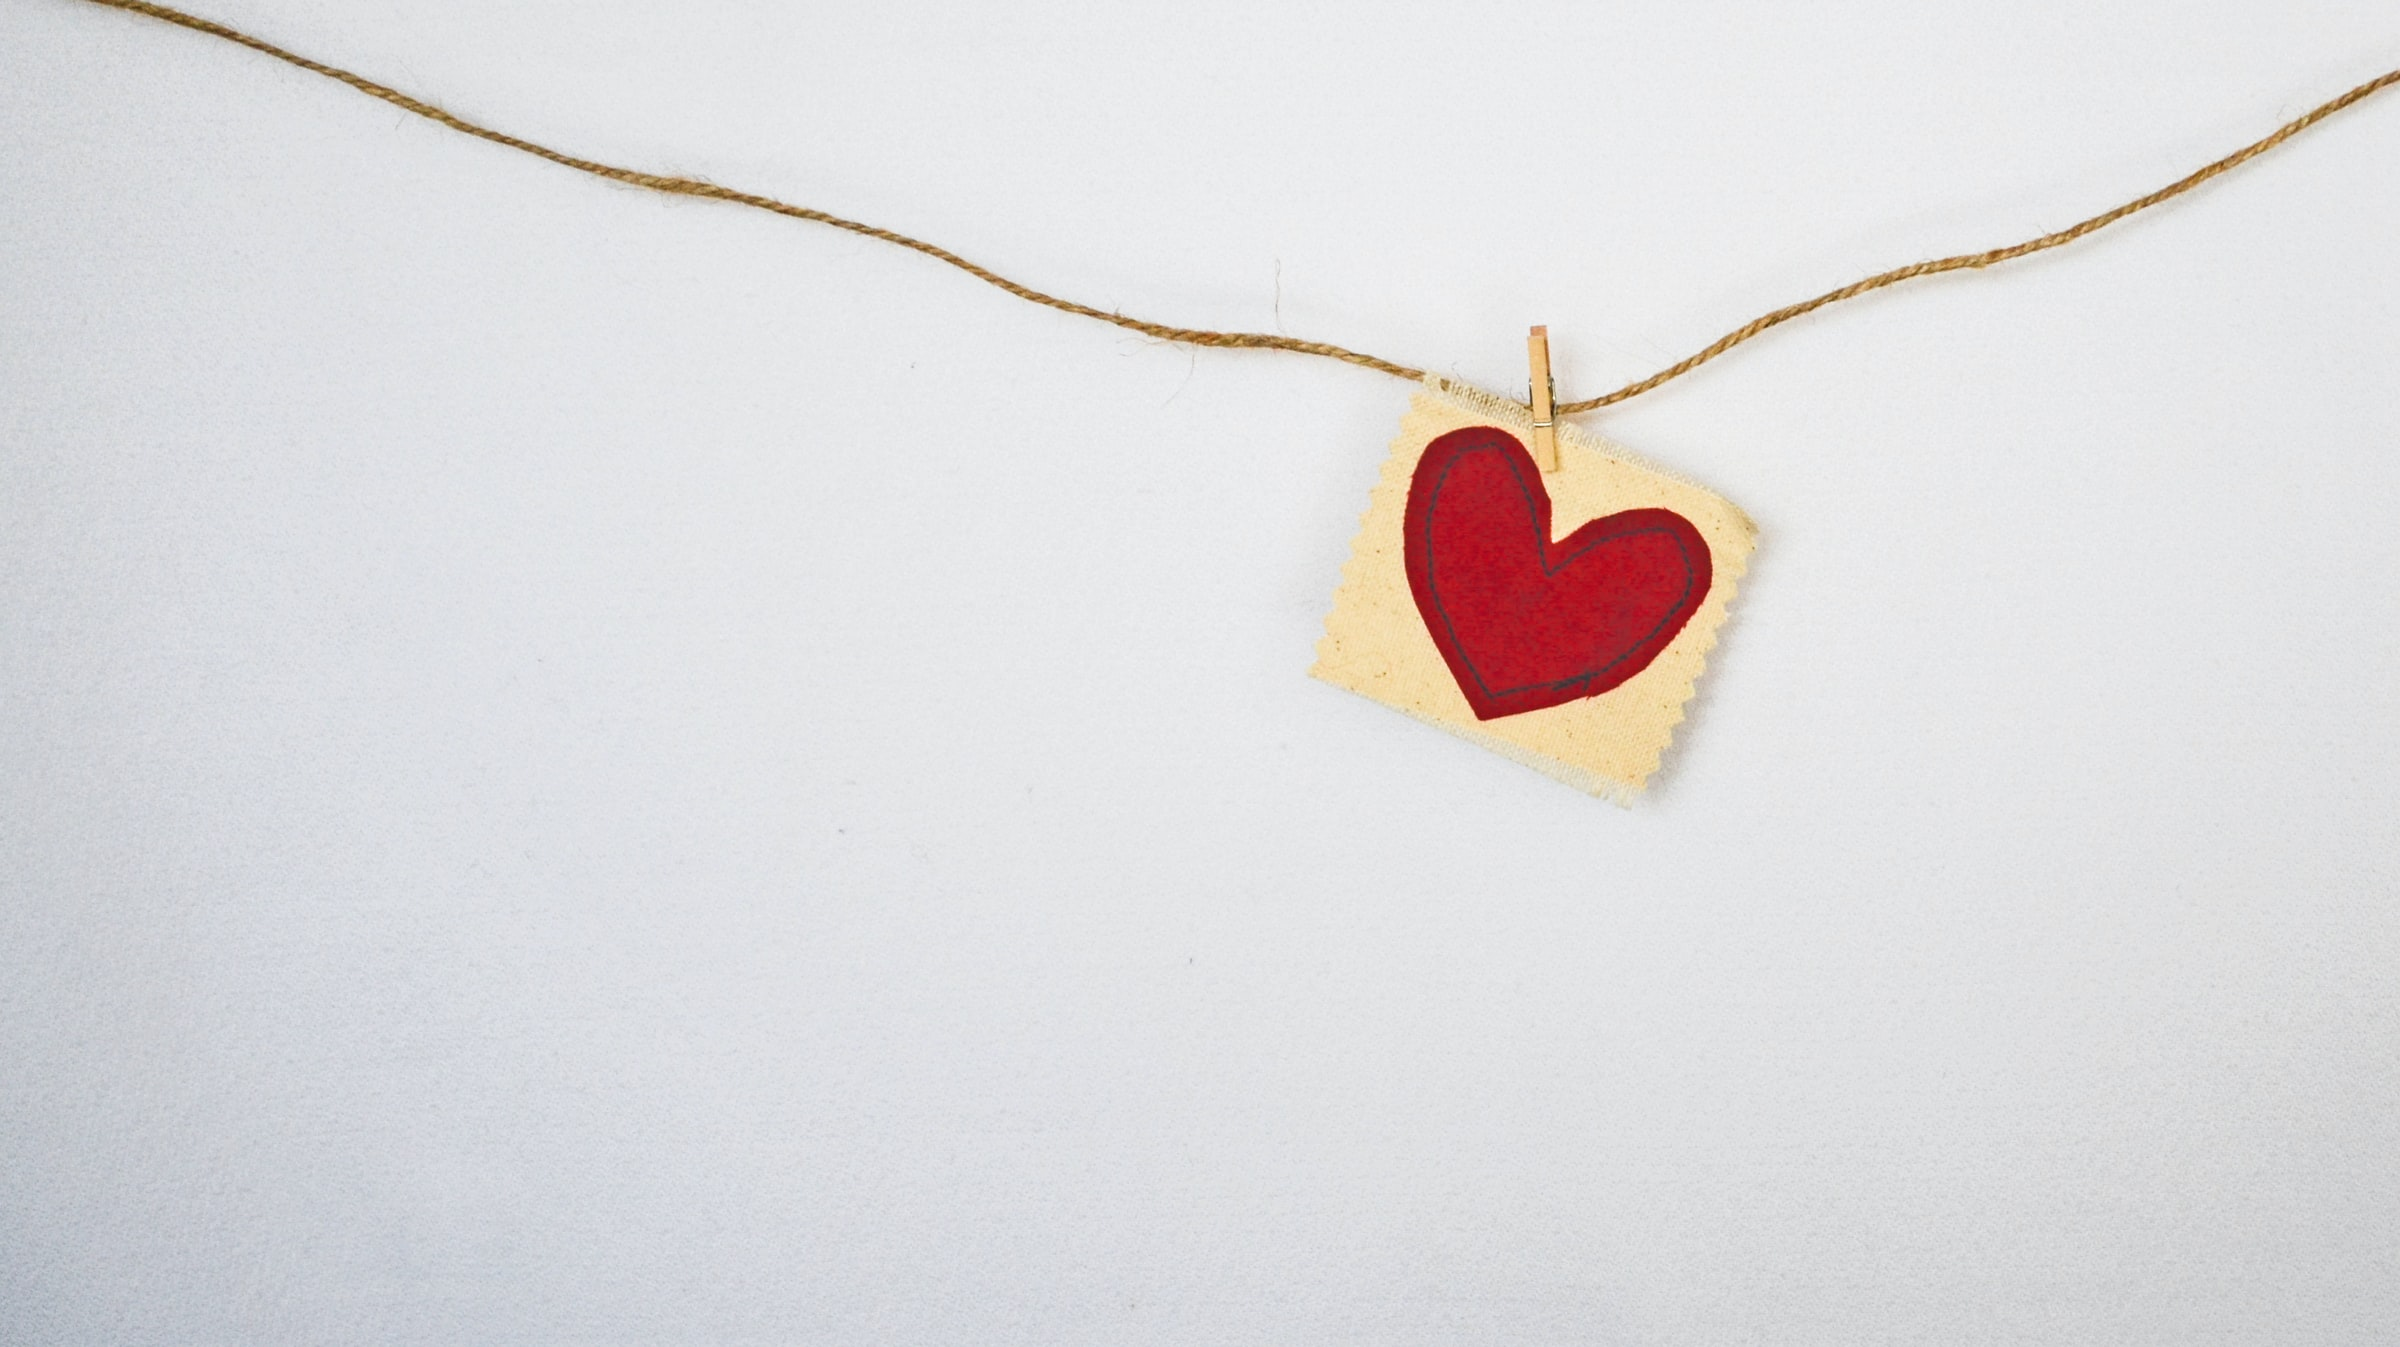 Do You Need a Life Coach? Heart pinned to string on the wall